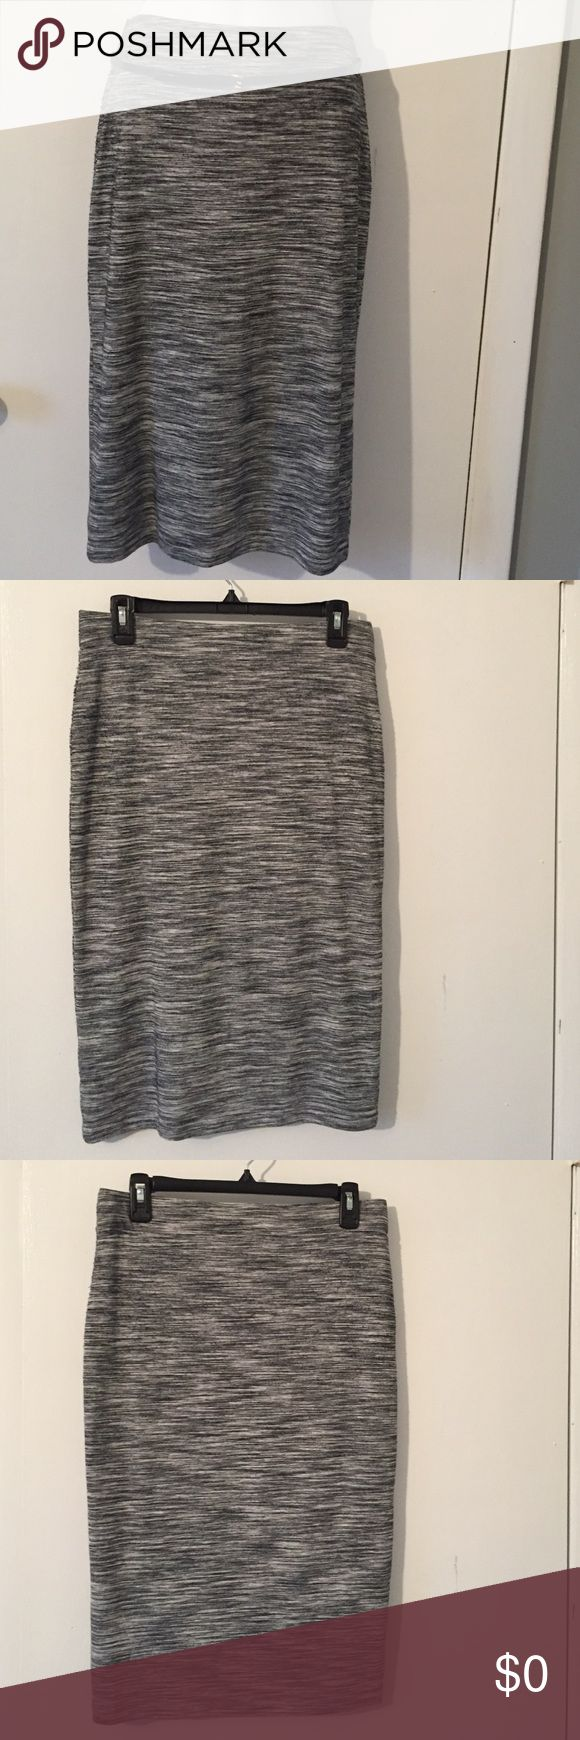 Slim fit skirt❤️ Slim fit skirt with elastic waste, worn only once. In excellent condition. Approximately 27 inch long. Apt. 9 Skirts Midi